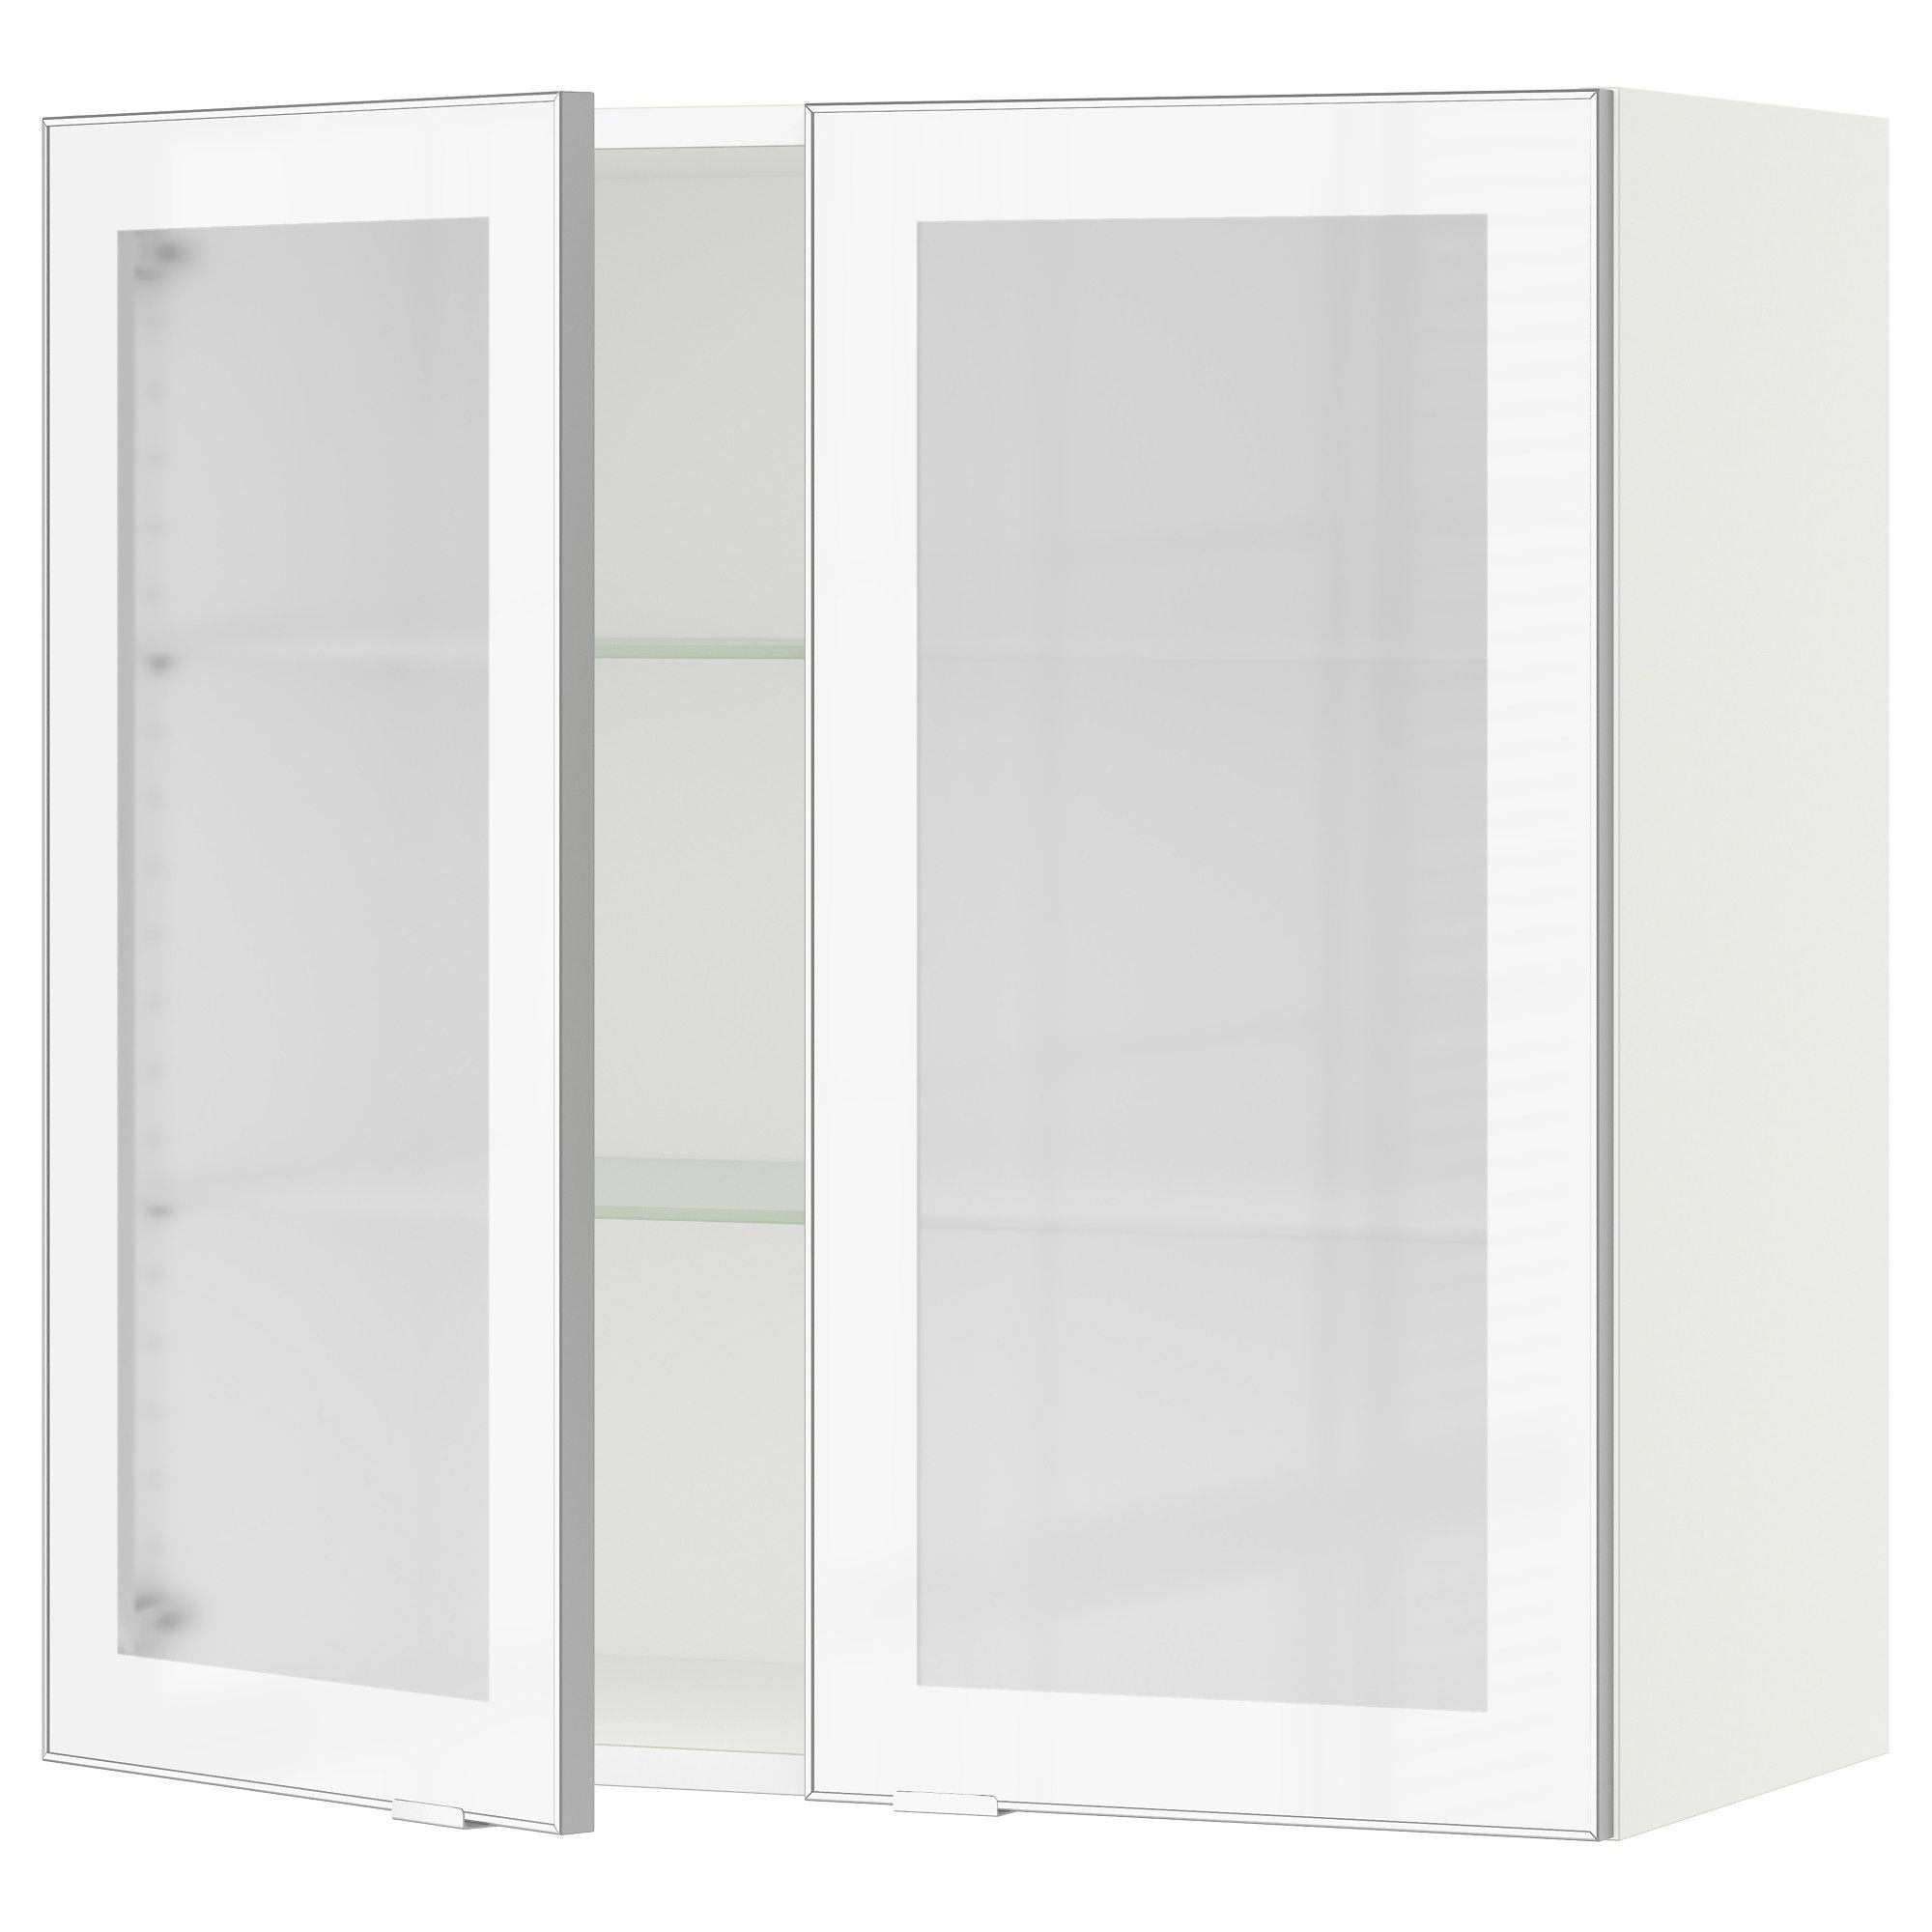 IKEA   SEKTION White Wall Cabinet With 2 Glass Doors Frame Colour: